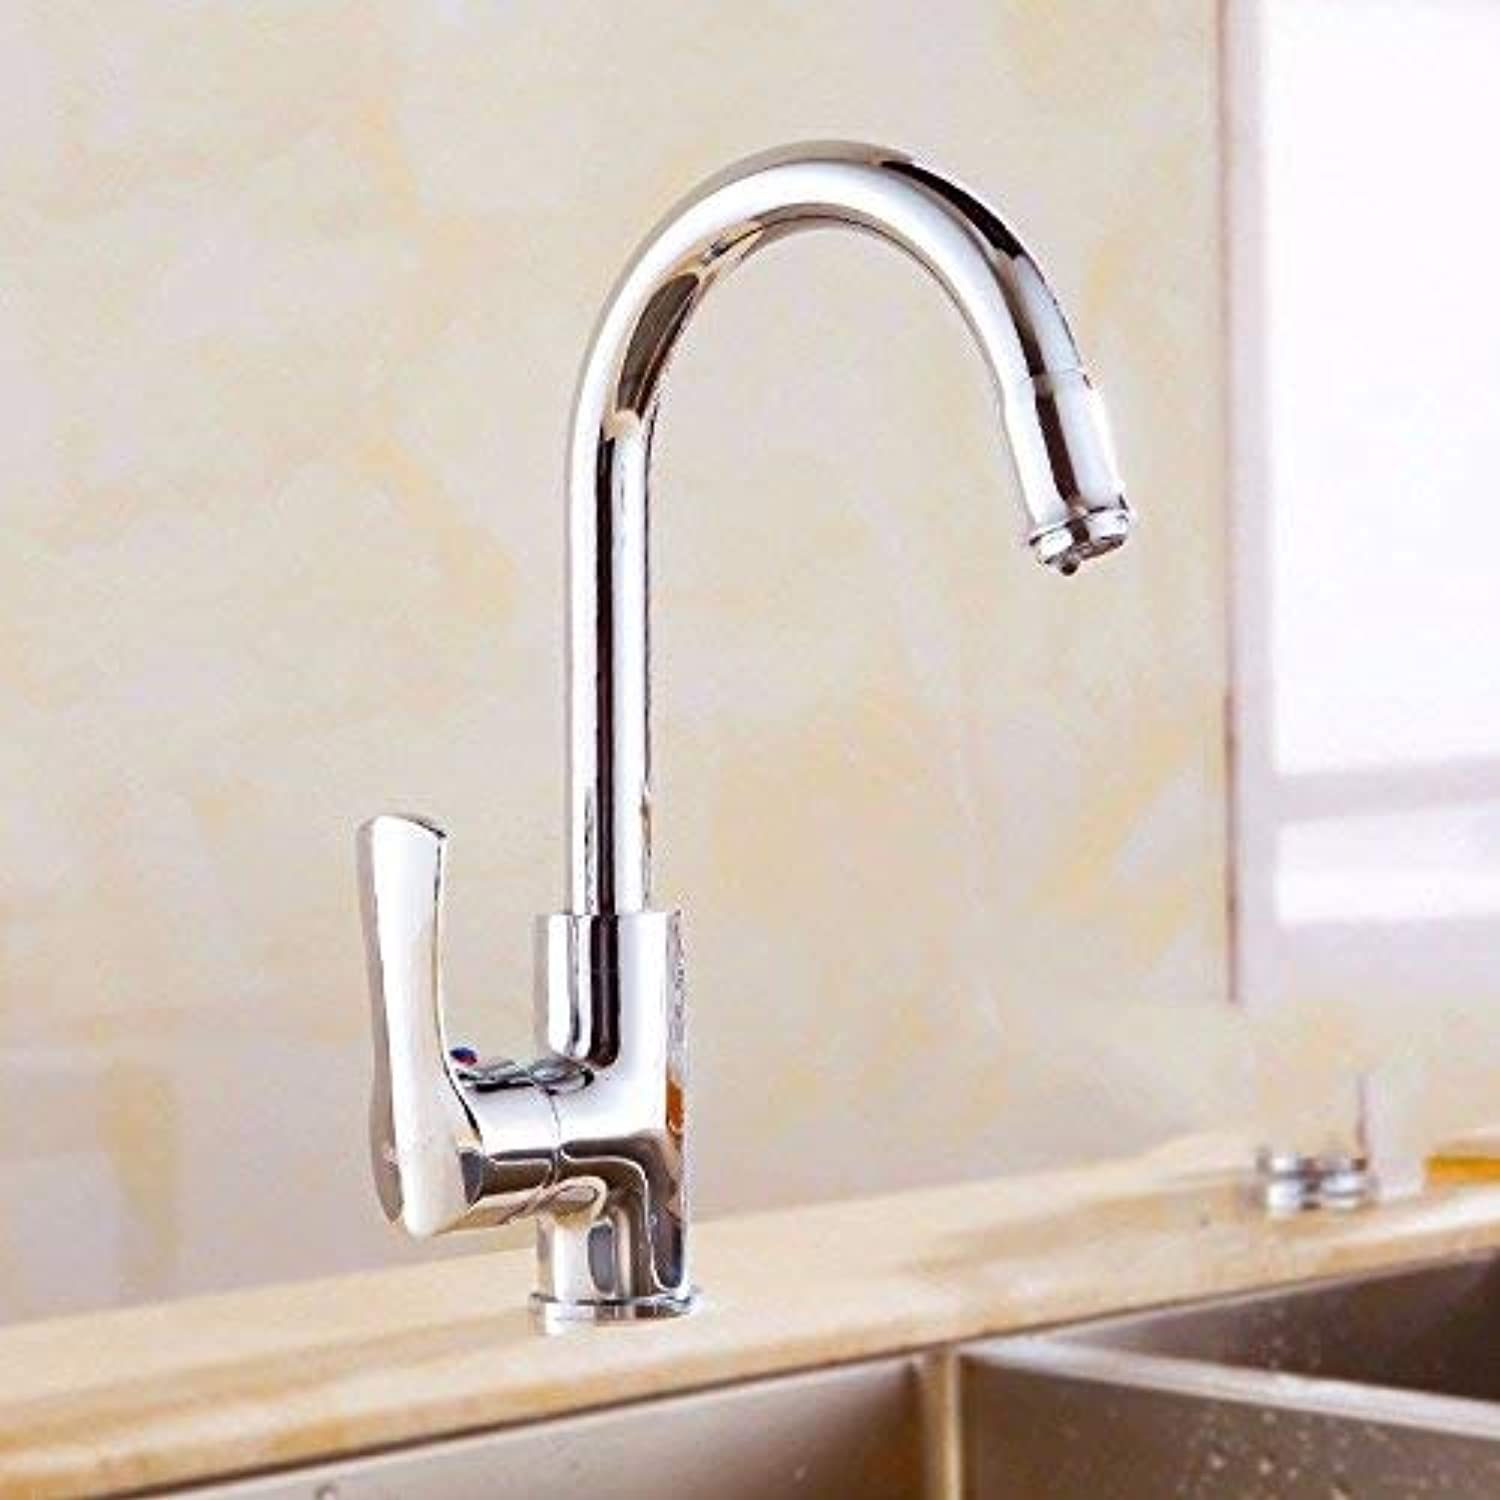 Oudan Sink Taps European style copper kitchen golden redating Hot and cold Single hole ceramics